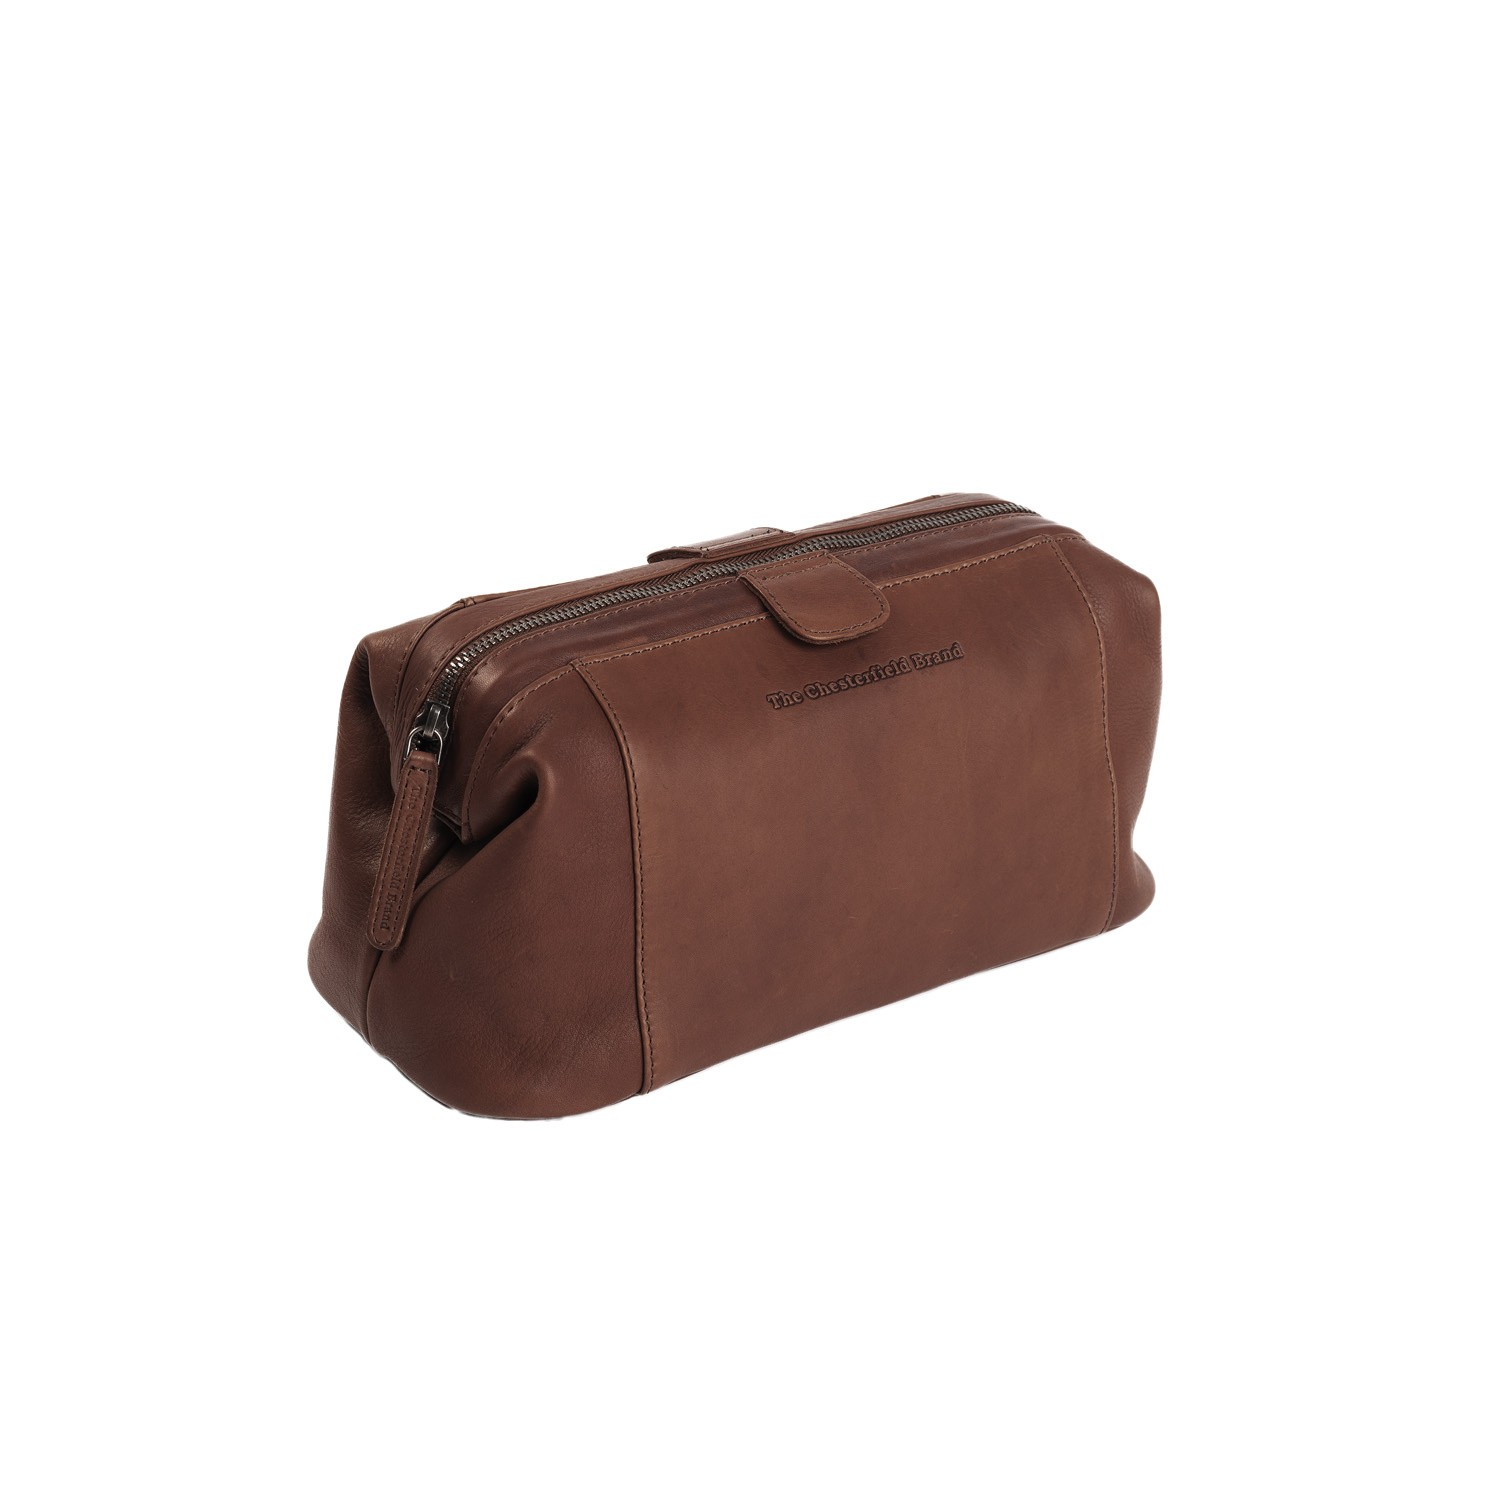 Chesterfield Toiletbag 'Vincent' C08.0171 Brown